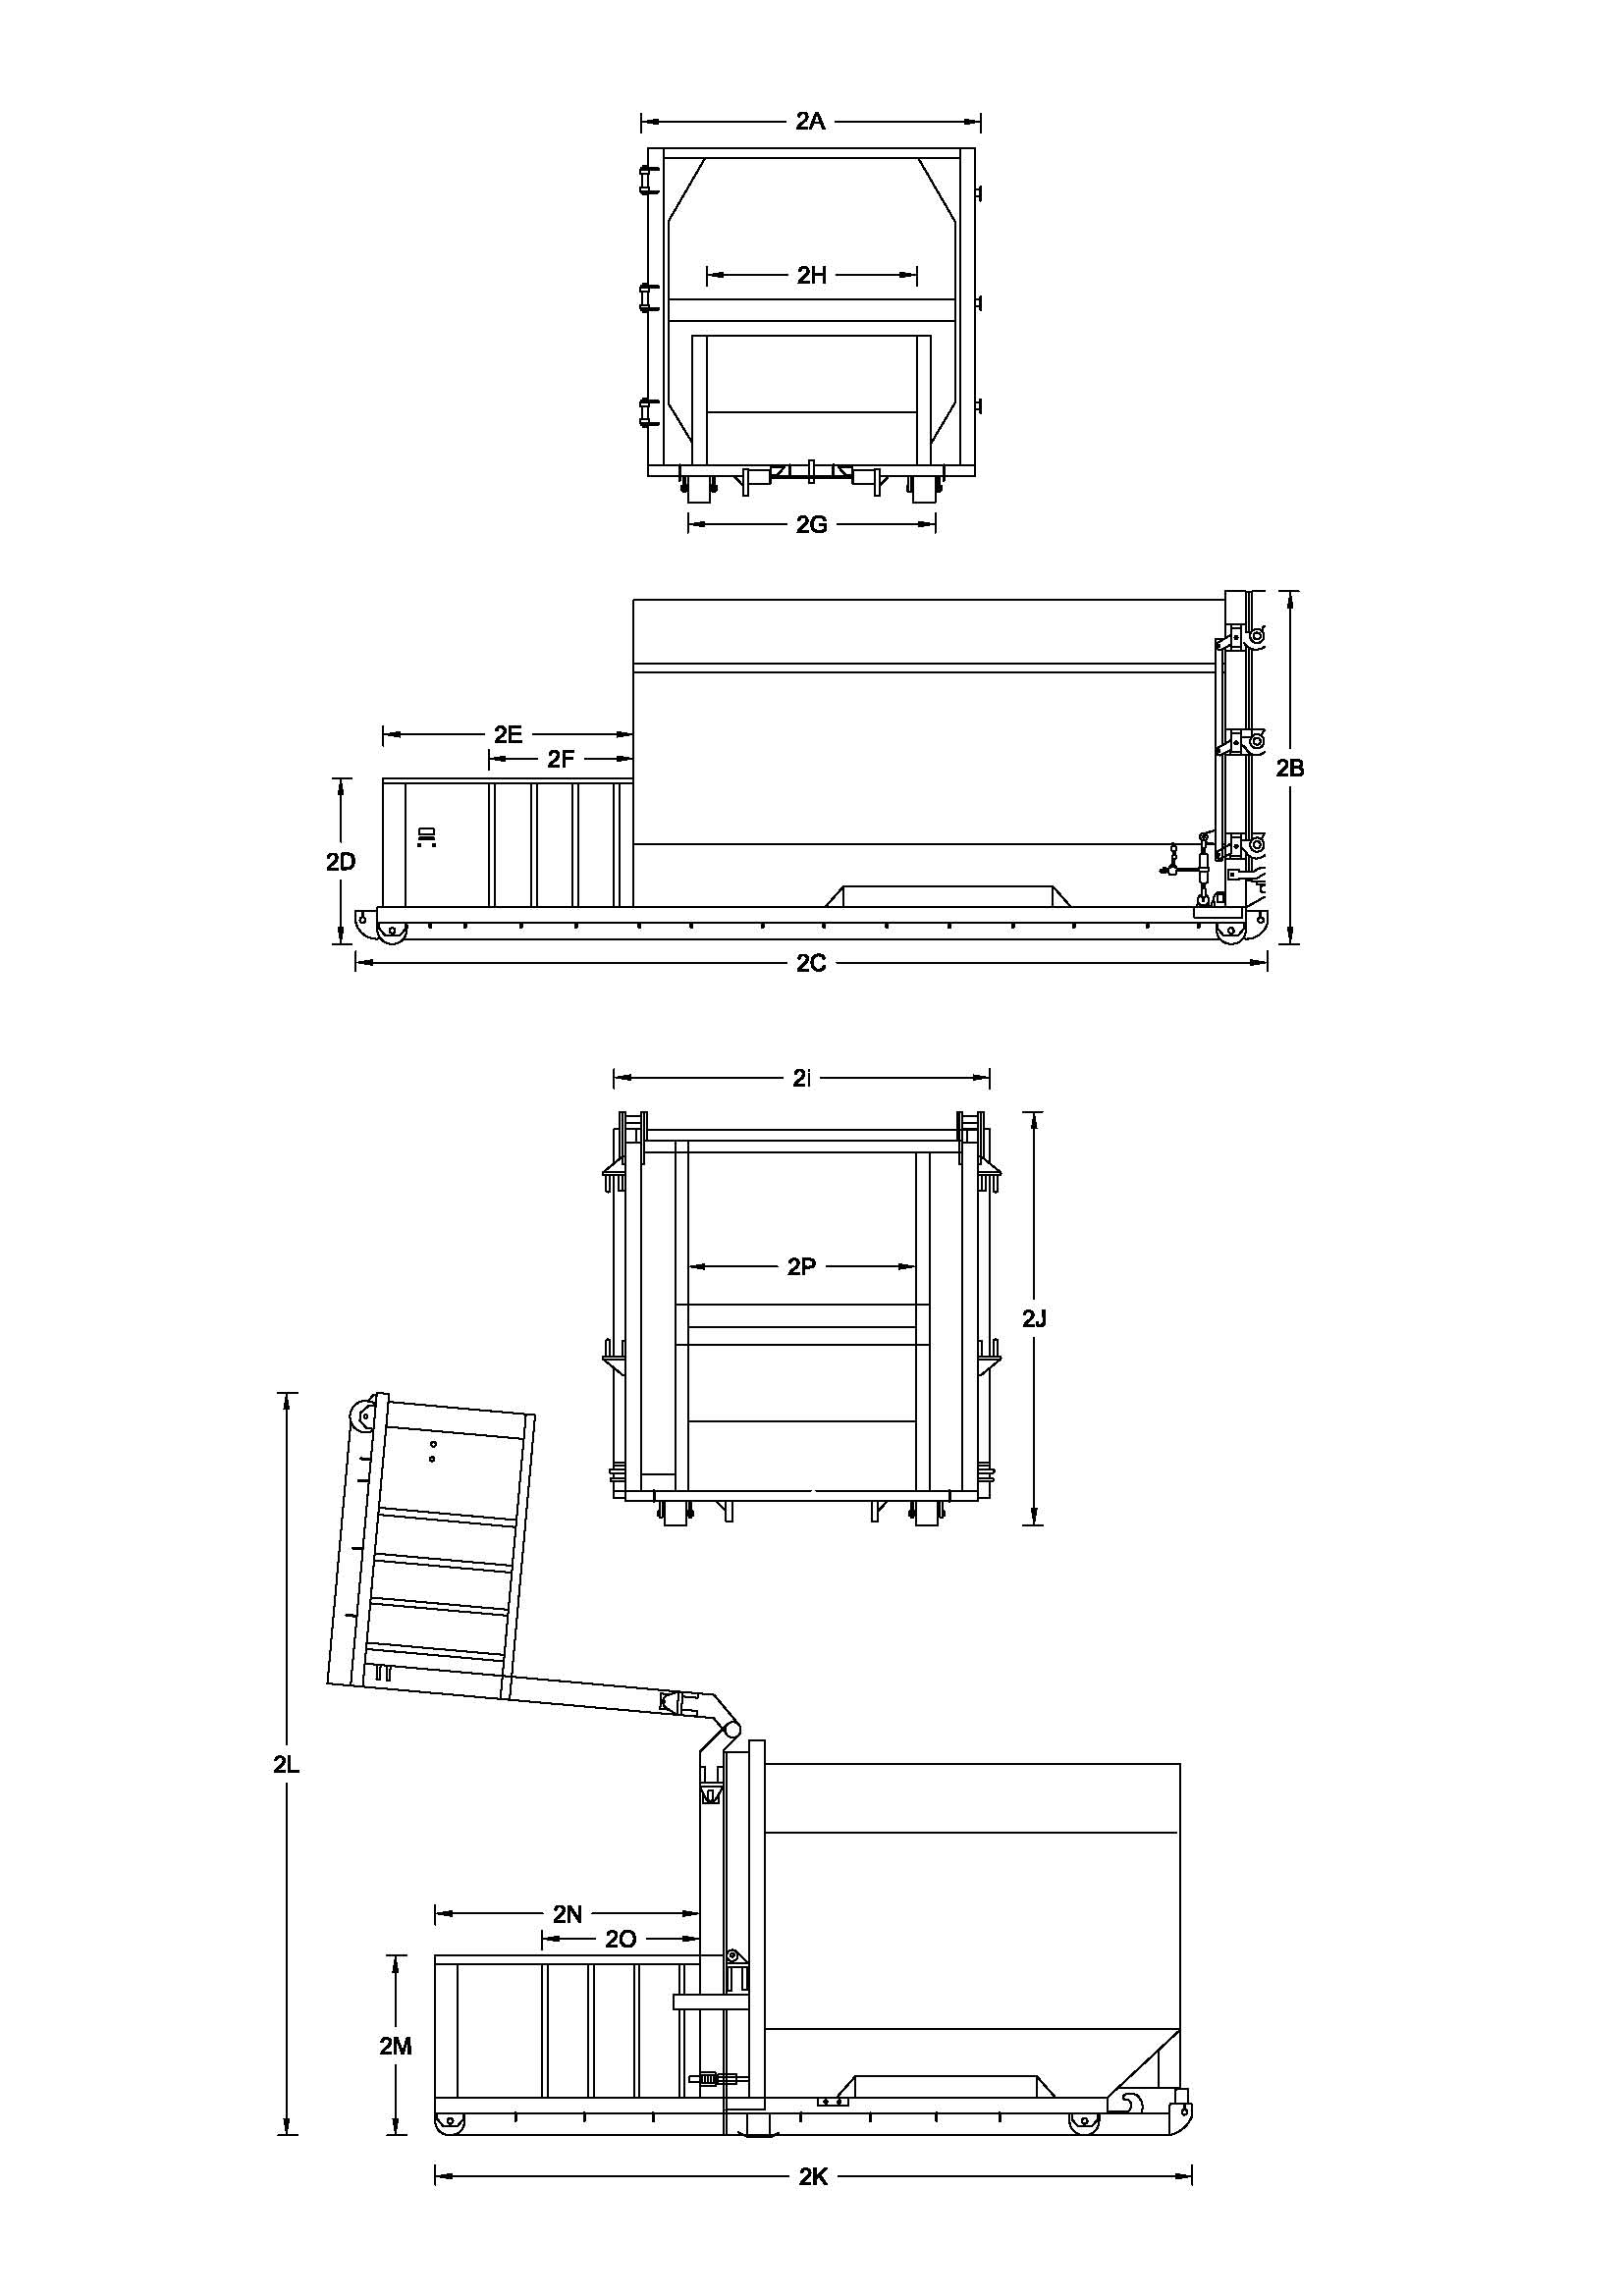 34 Yard Self Contained Compactor Diagram - 2 Yd Charge Box